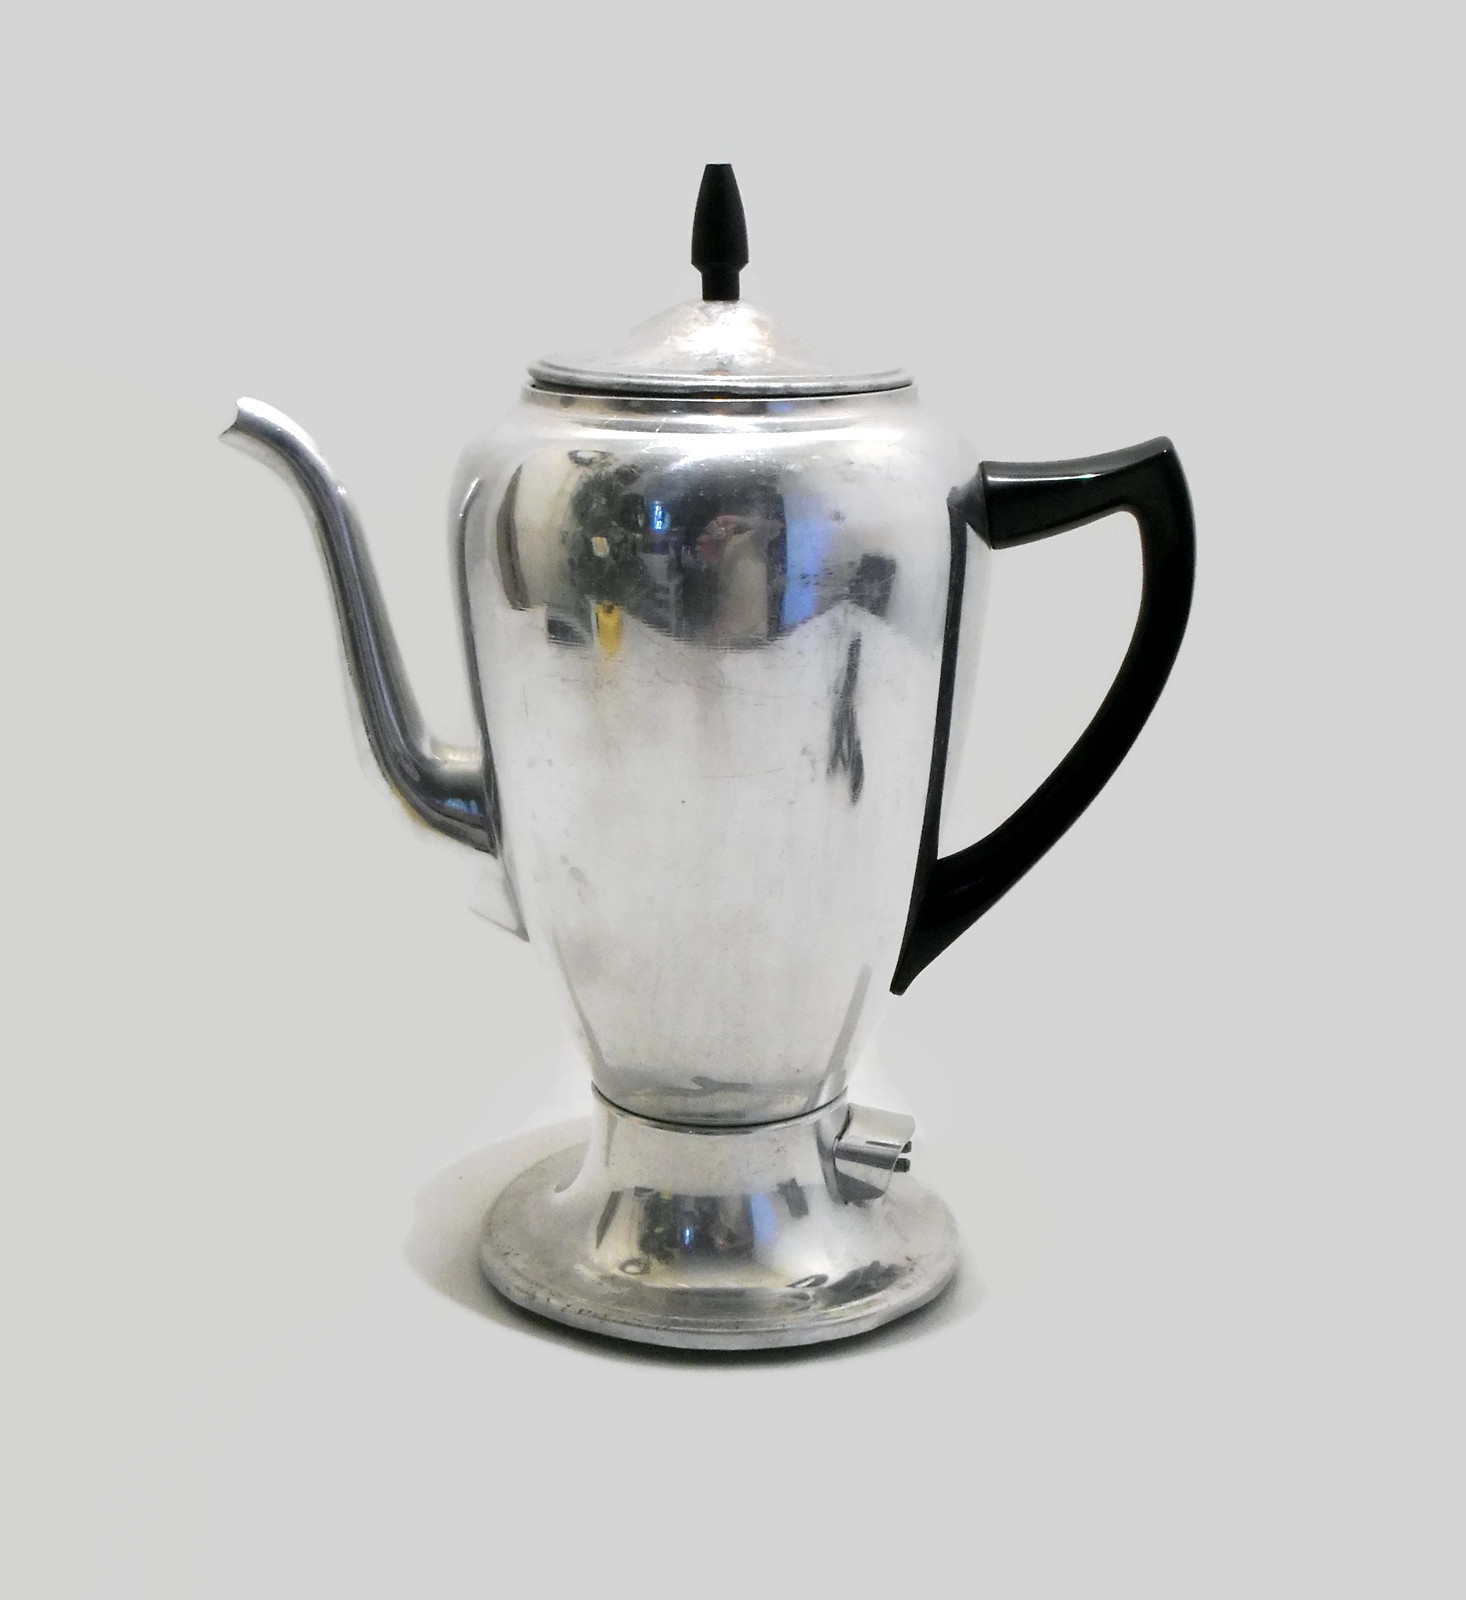 Vintage Mirro Matic 10 Cup Electric Coffee Pot Maker